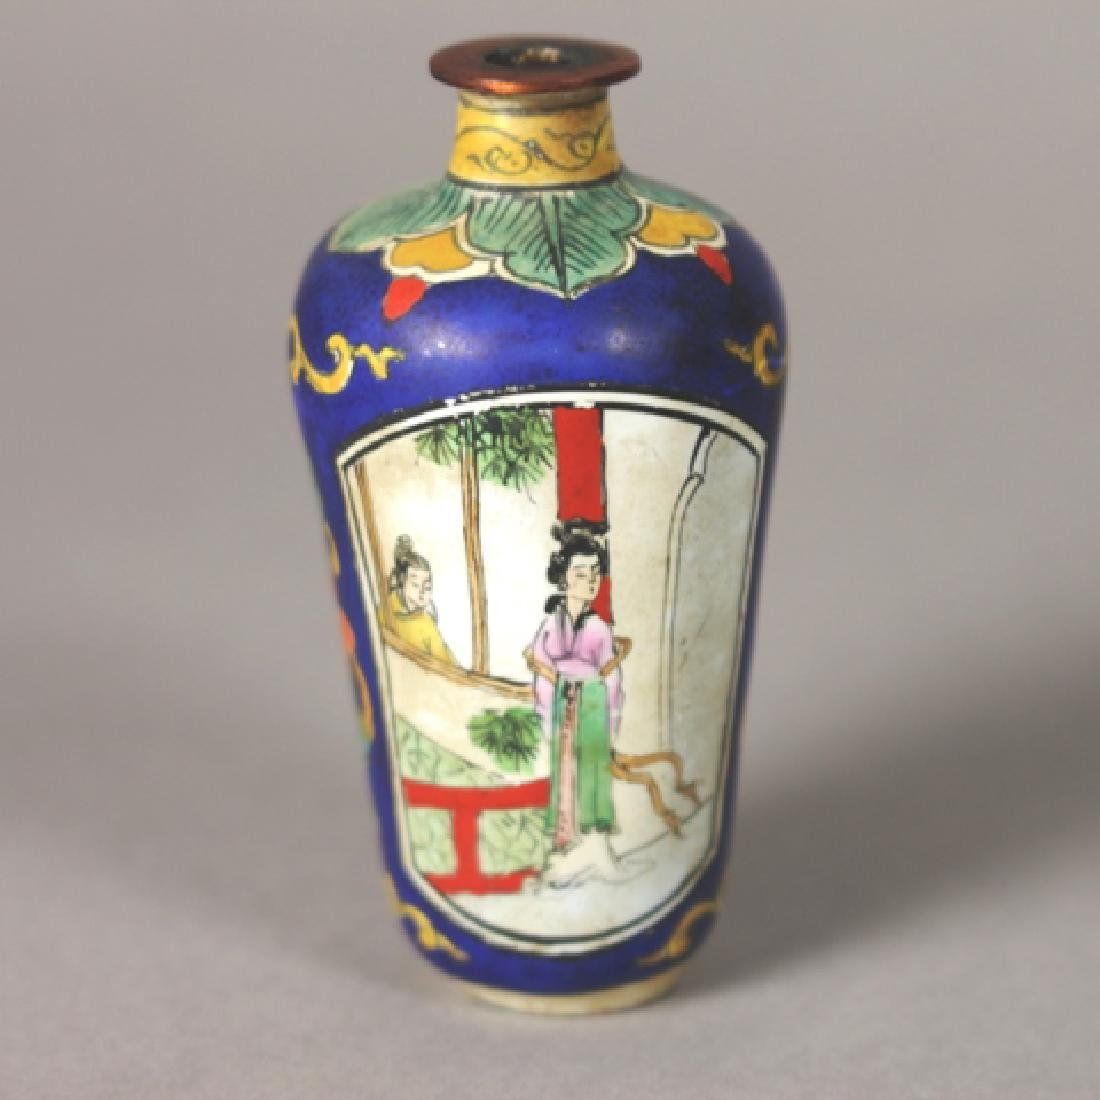 19th Century Chinese Enamel on Copper Snuff Bottle - 2